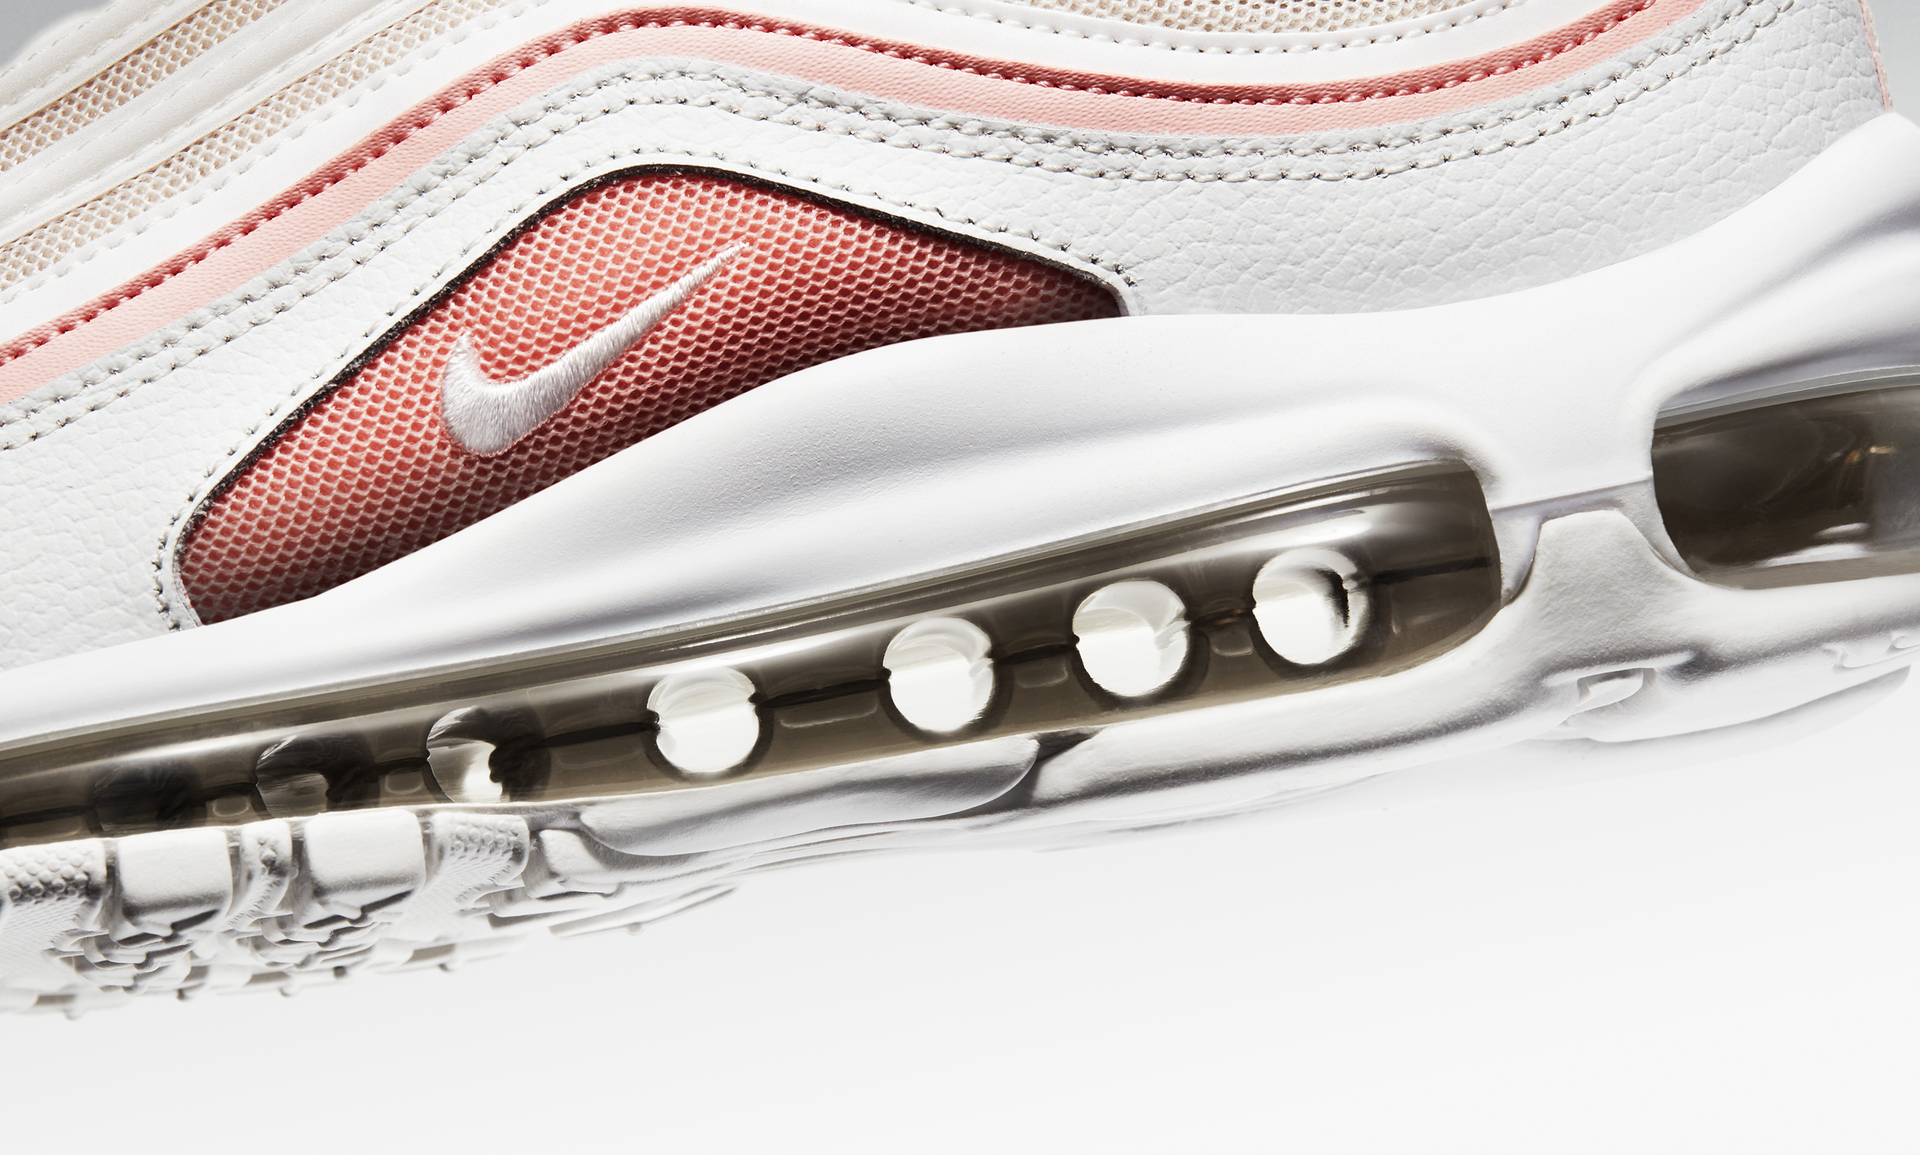 Details about Nike Air Max 97 Women's New Pure Platinum Midnight Navy Pink Sneakers 921733 015